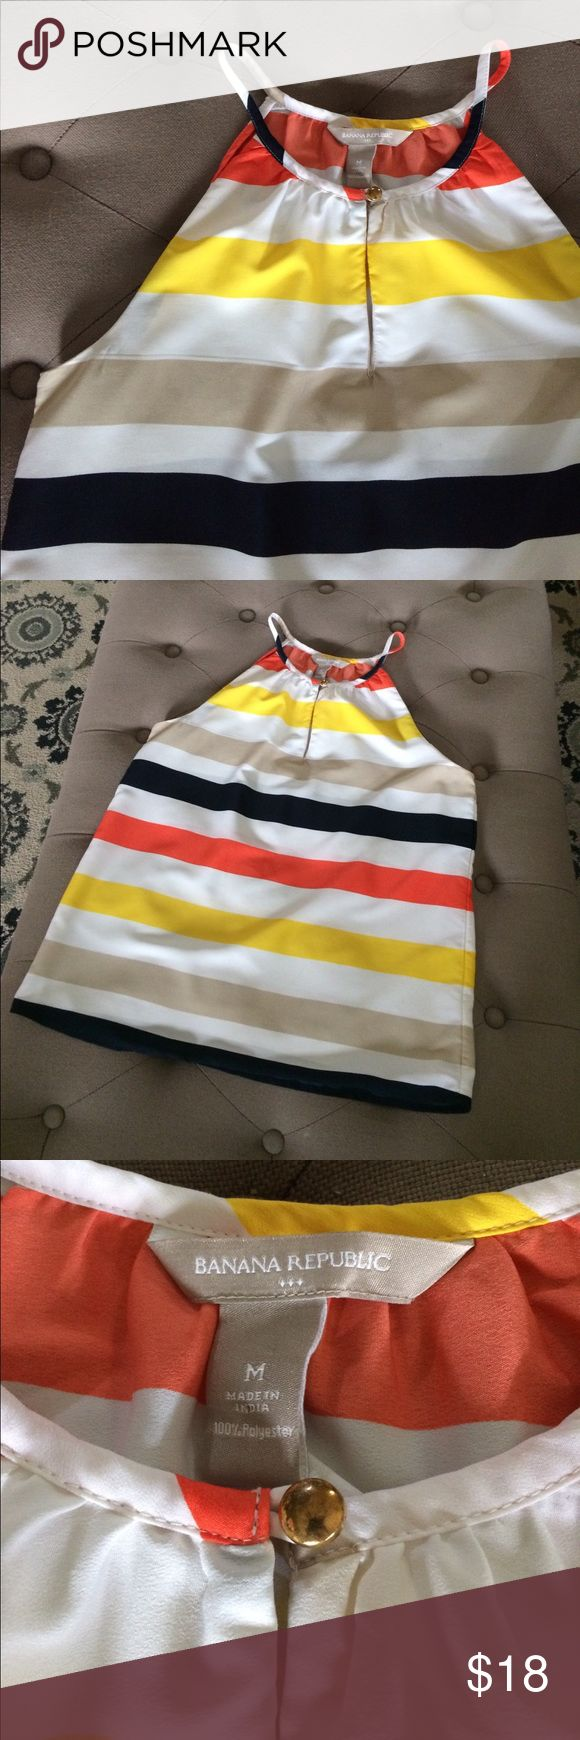 Banana Republic Tank Silky soft halter-cut tank in orange, yellow, navy, white and khaki stripes. Keyhole neckline with shiny gold button. Has two spots as seen in pics. The second is on the inside when wearing so not noticeable and the first is tiny and probably only bothers me because I'm OCD like that. 🤦♀️ Otherwise in EUC. Banana Republic Tops Tank Tops